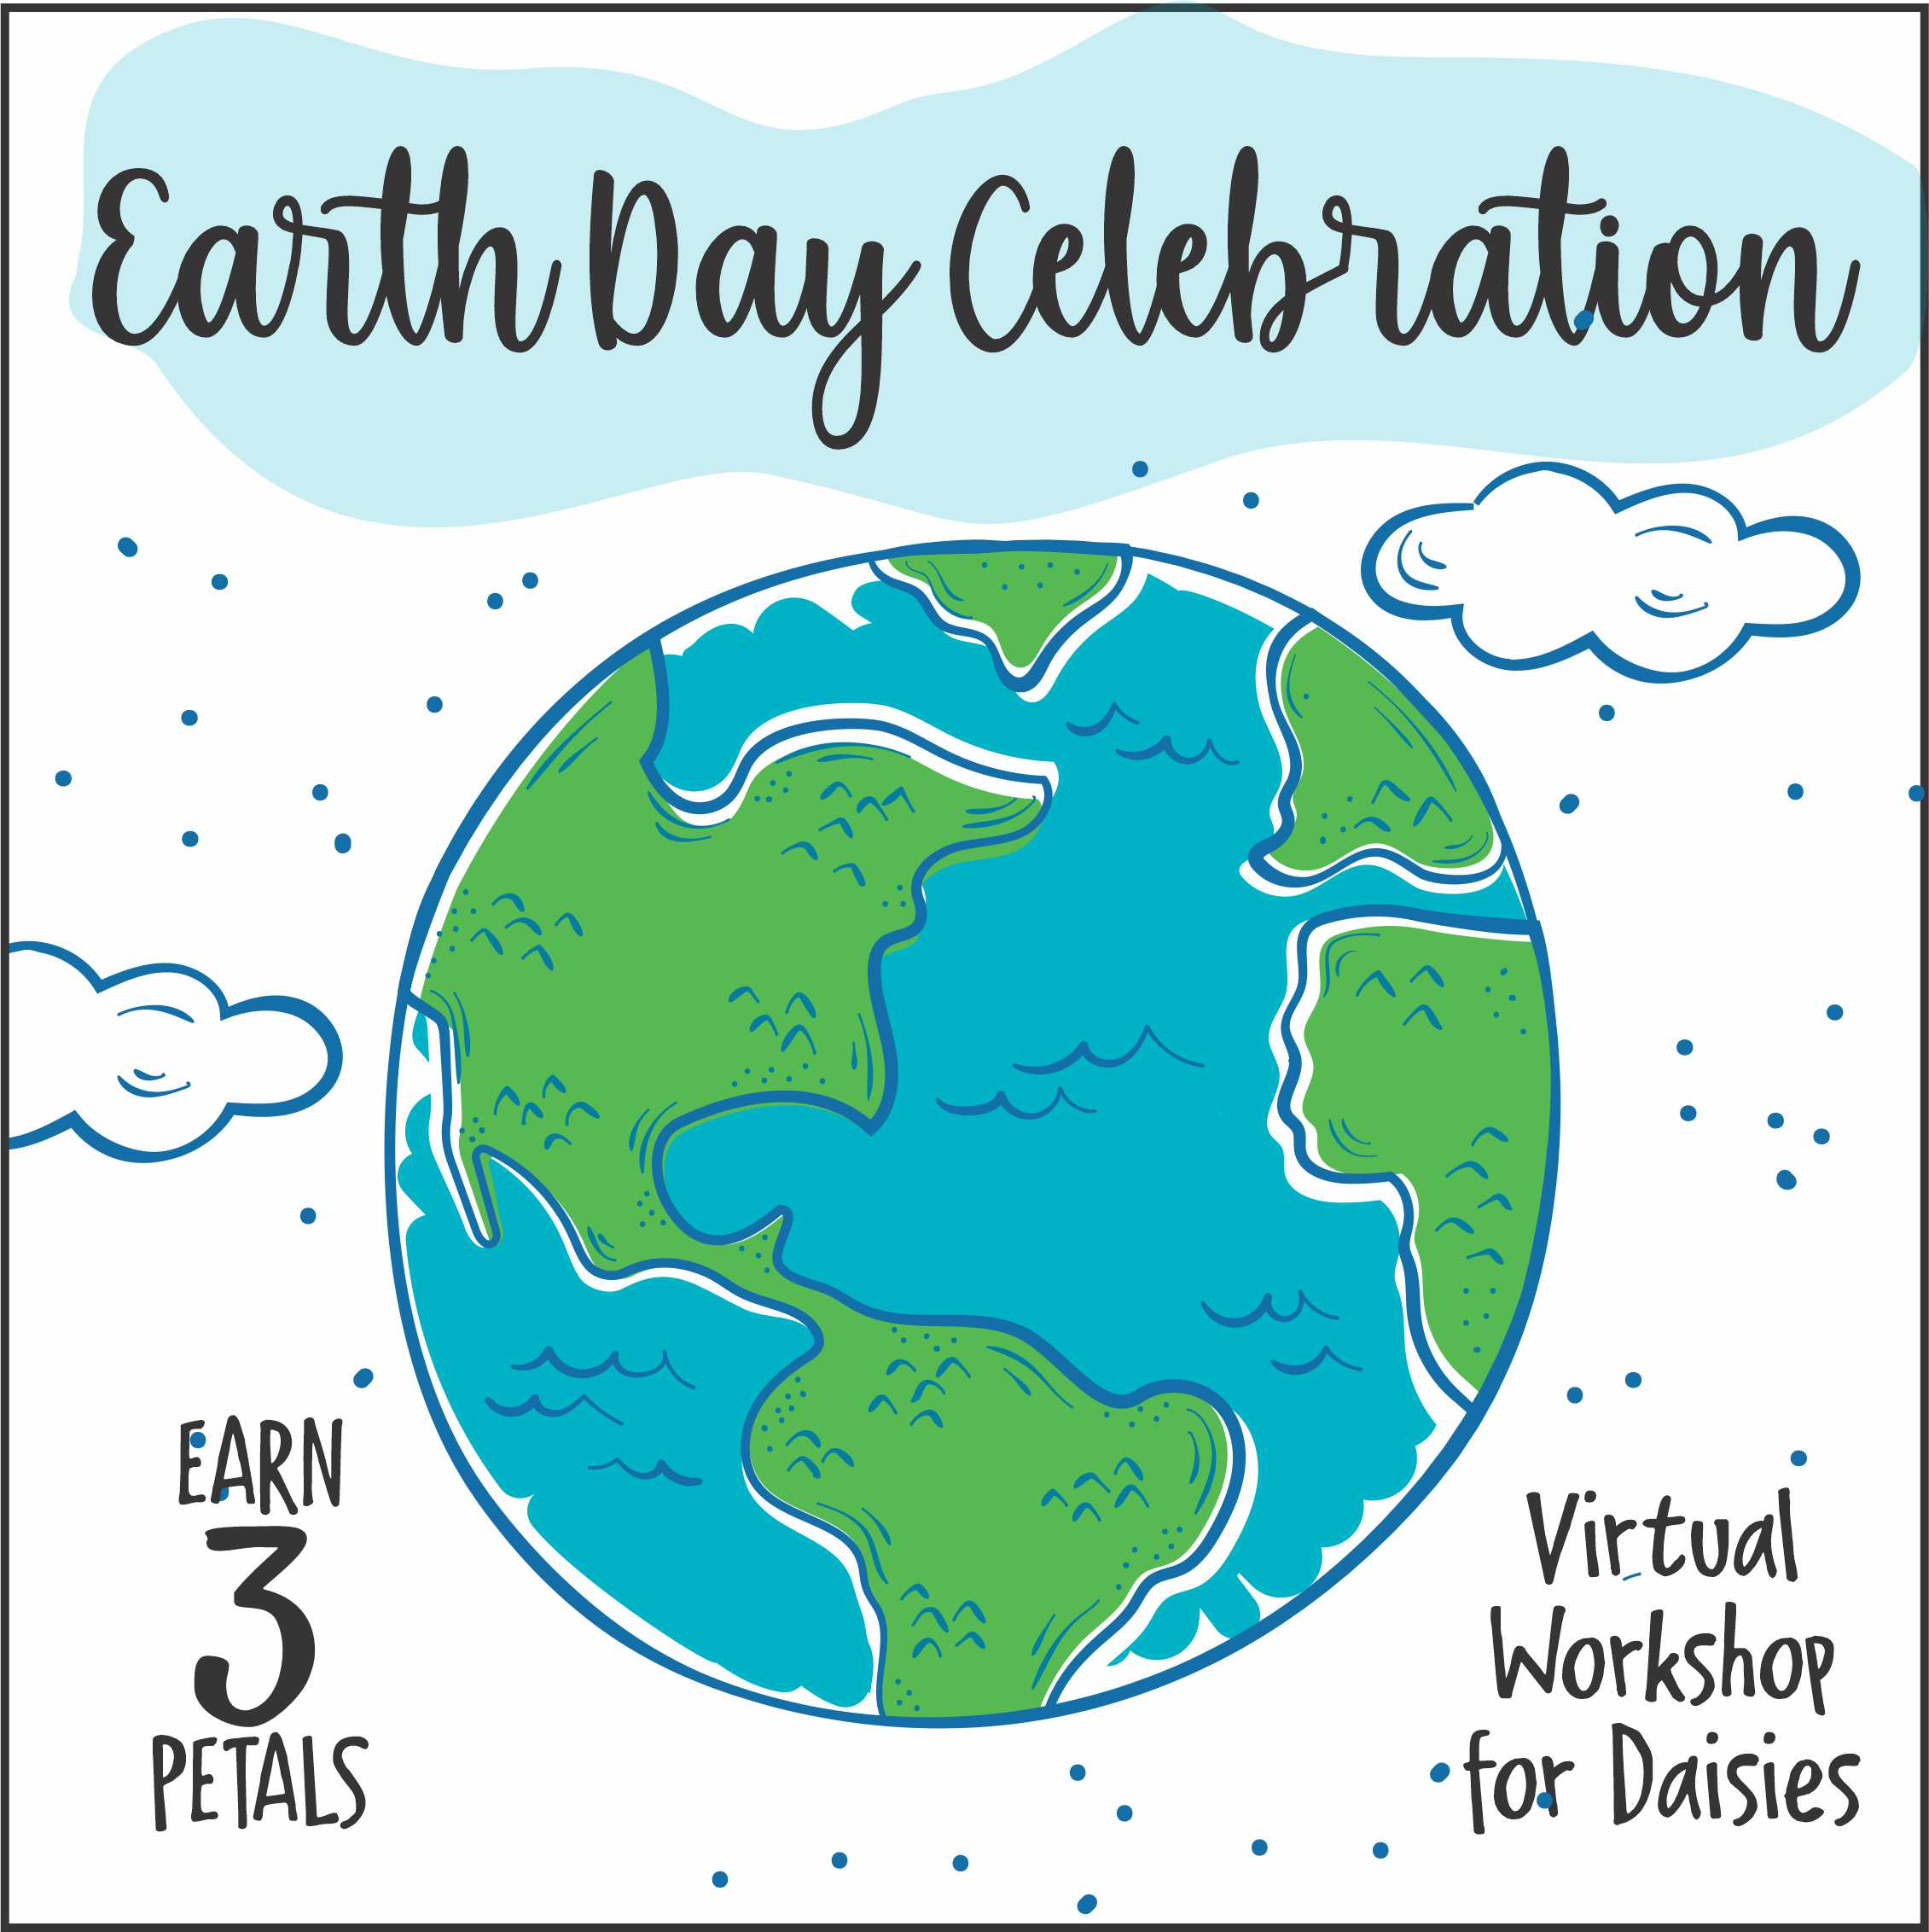 Girl Scout Earth Day Celebration Virtual Workshop for Daisies